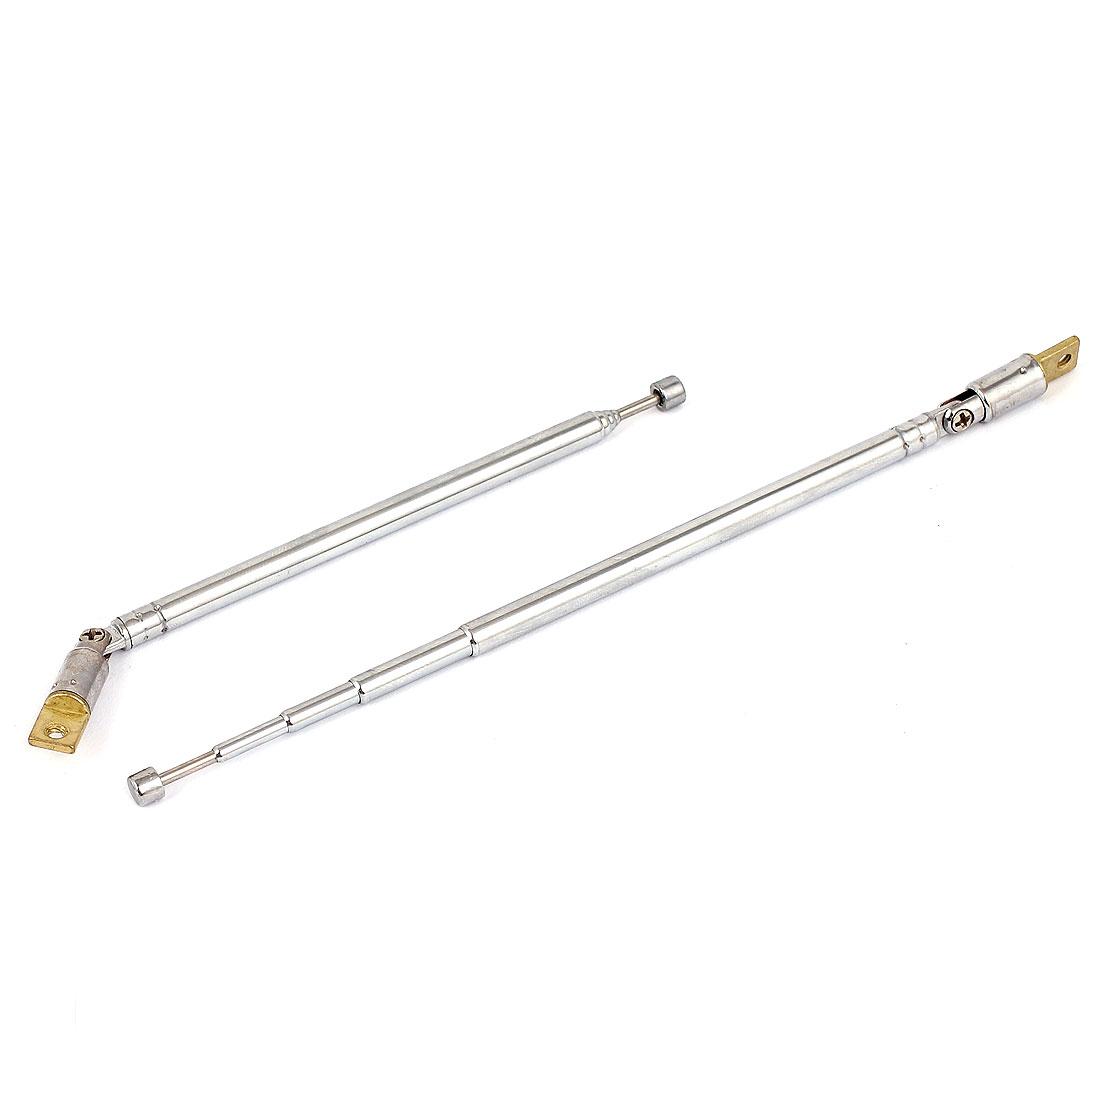 2pcs 38cm Long Rotated 360 Degree 5 Sections Telescopic Antenna Aerial Mast for FM AM Radio